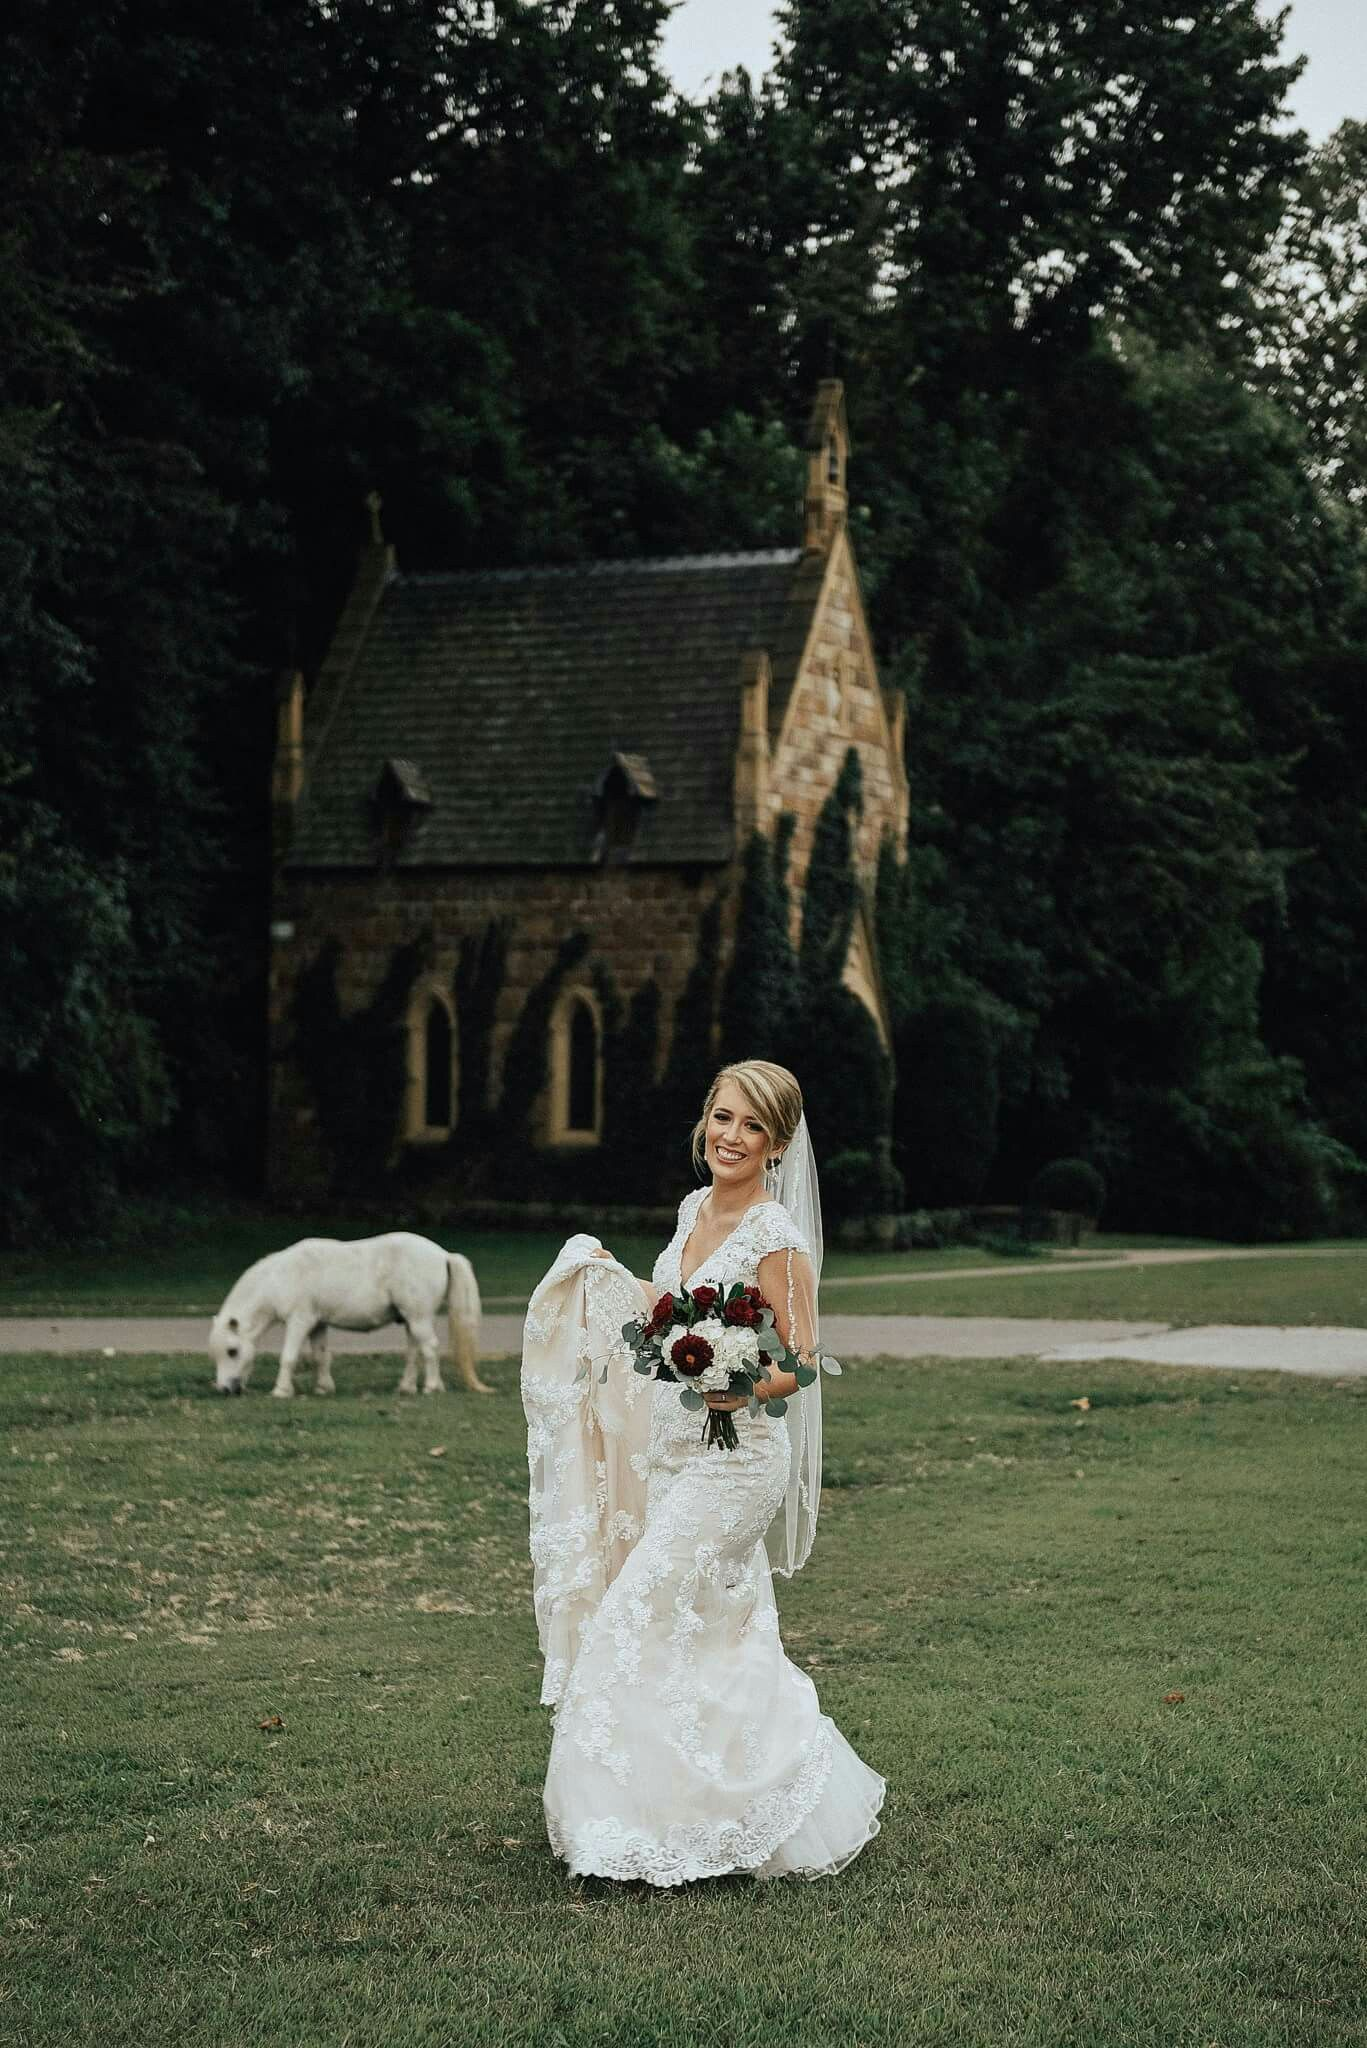 Ross wedding dress  Bridal portrait at St Catherines Bell Gable in Arkansas Photo by